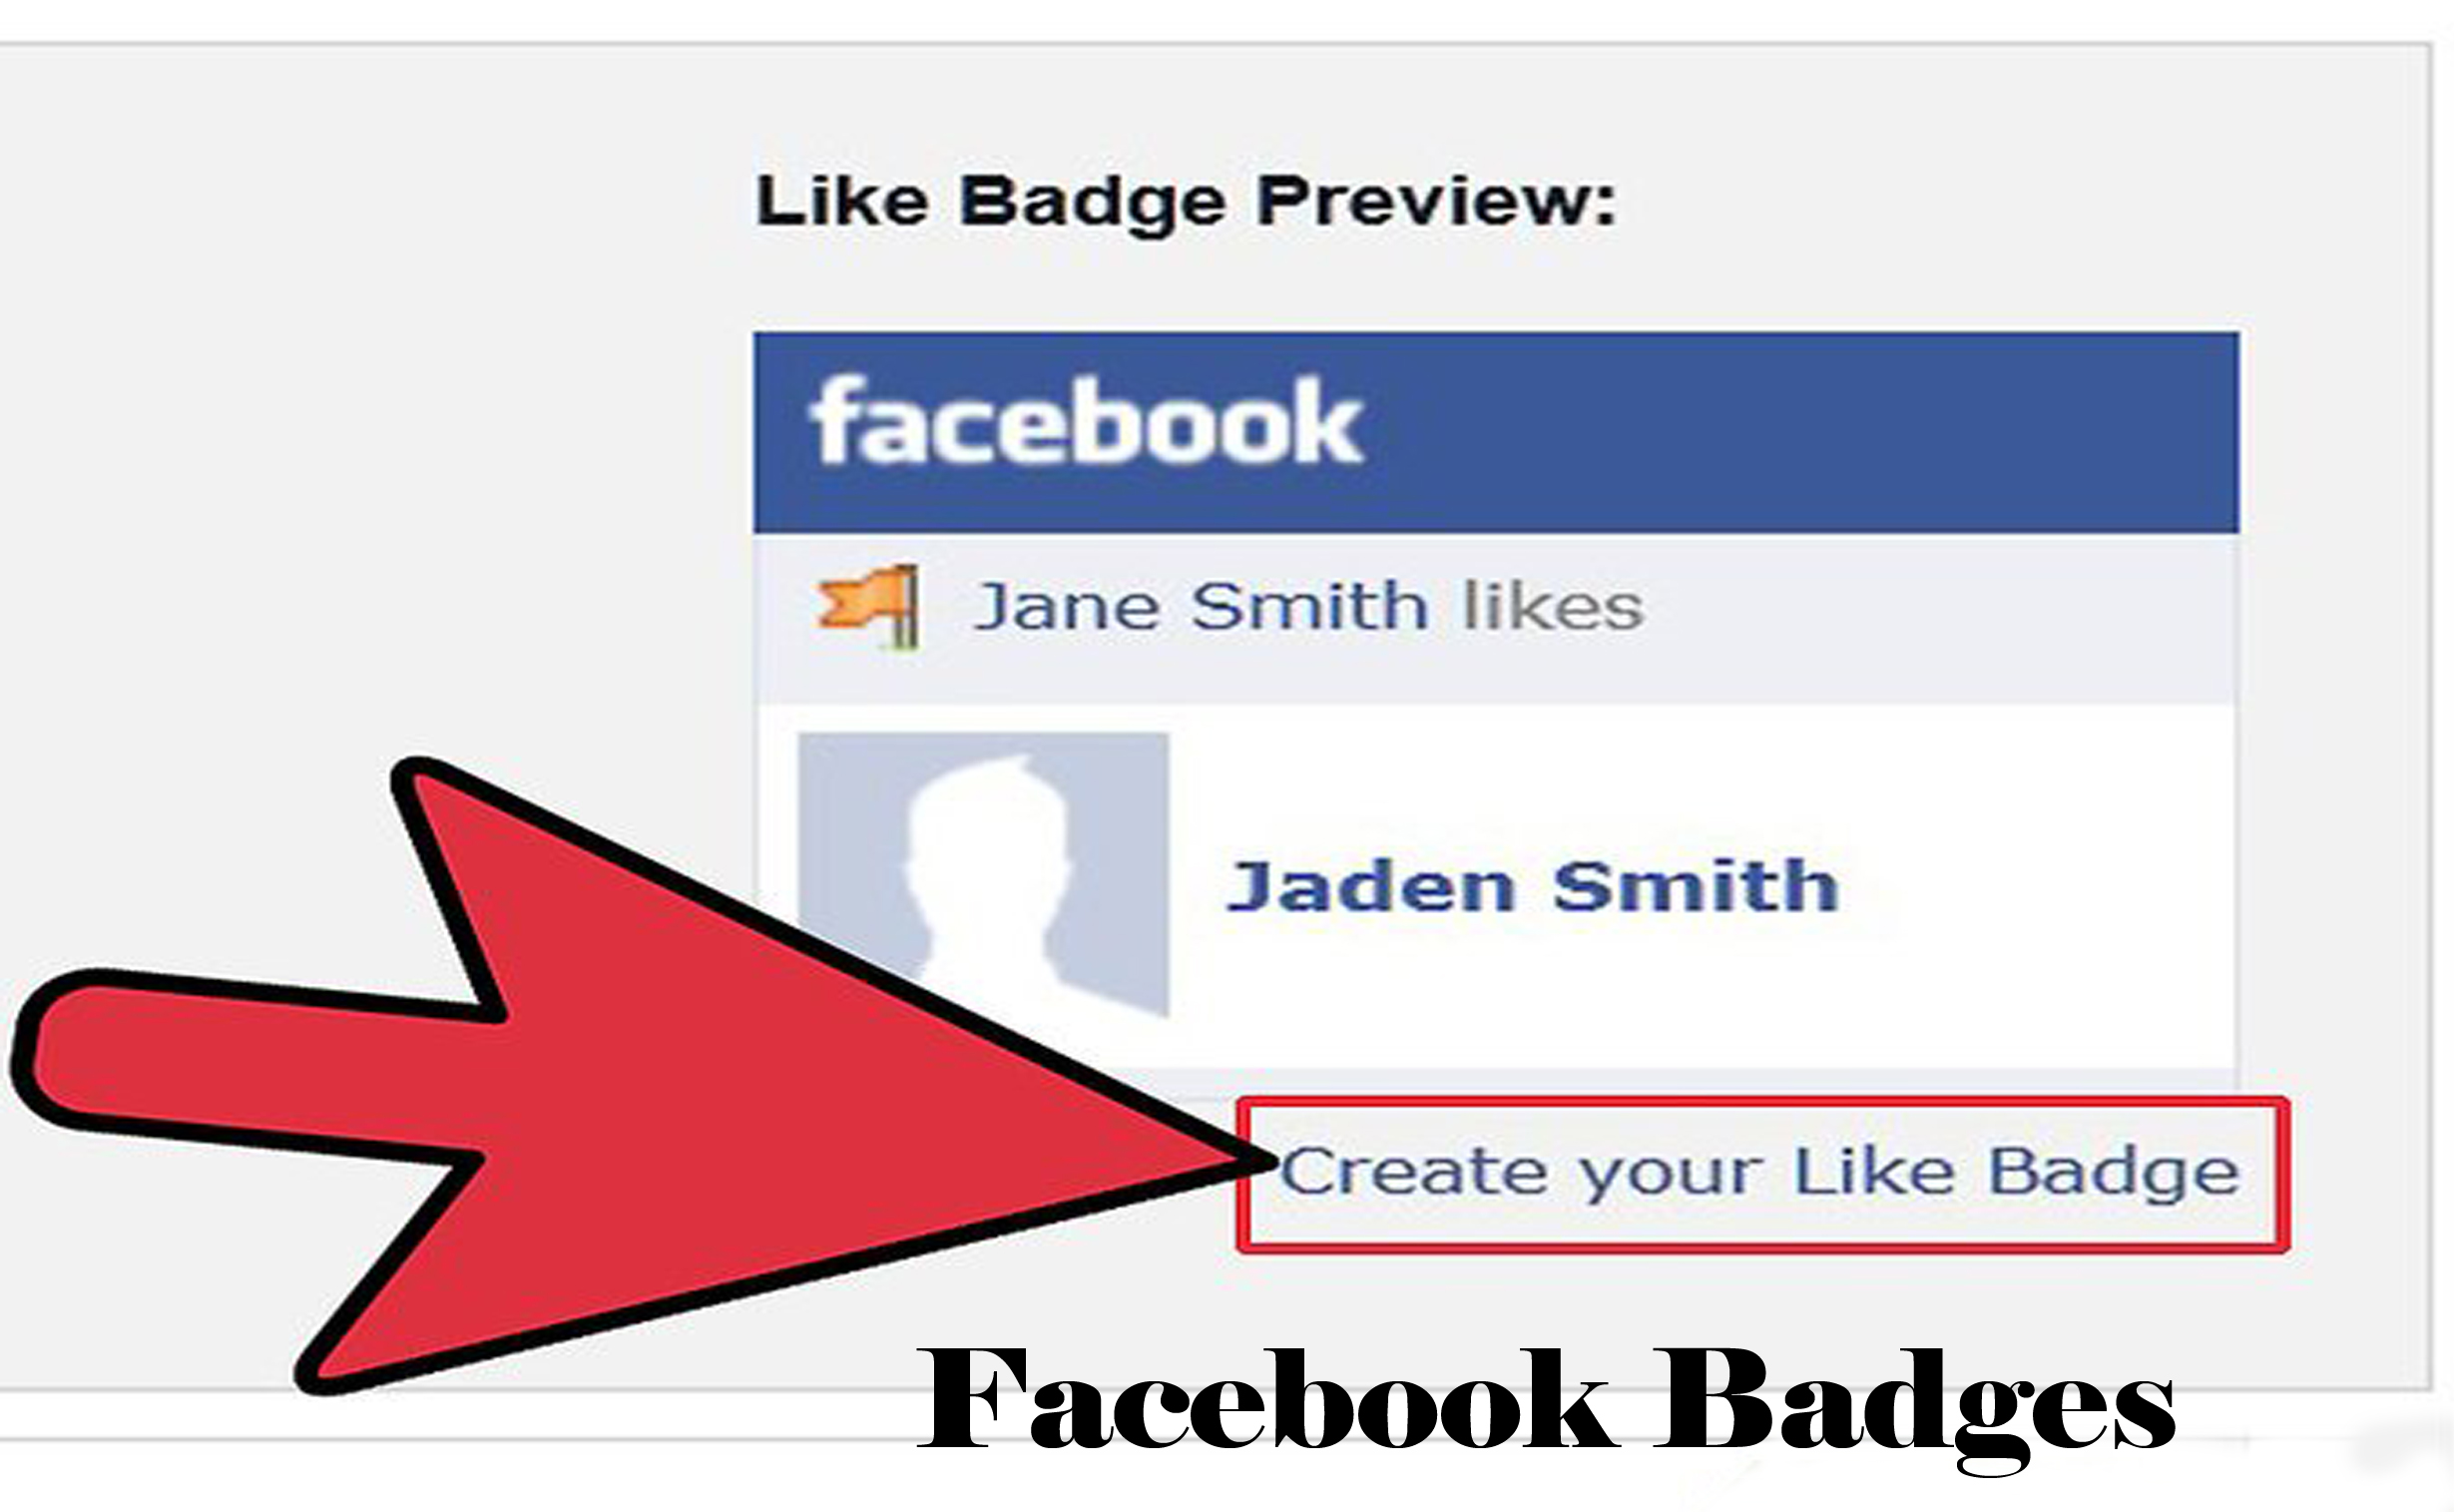 Facebook Badges - How to Create Facebook Badges